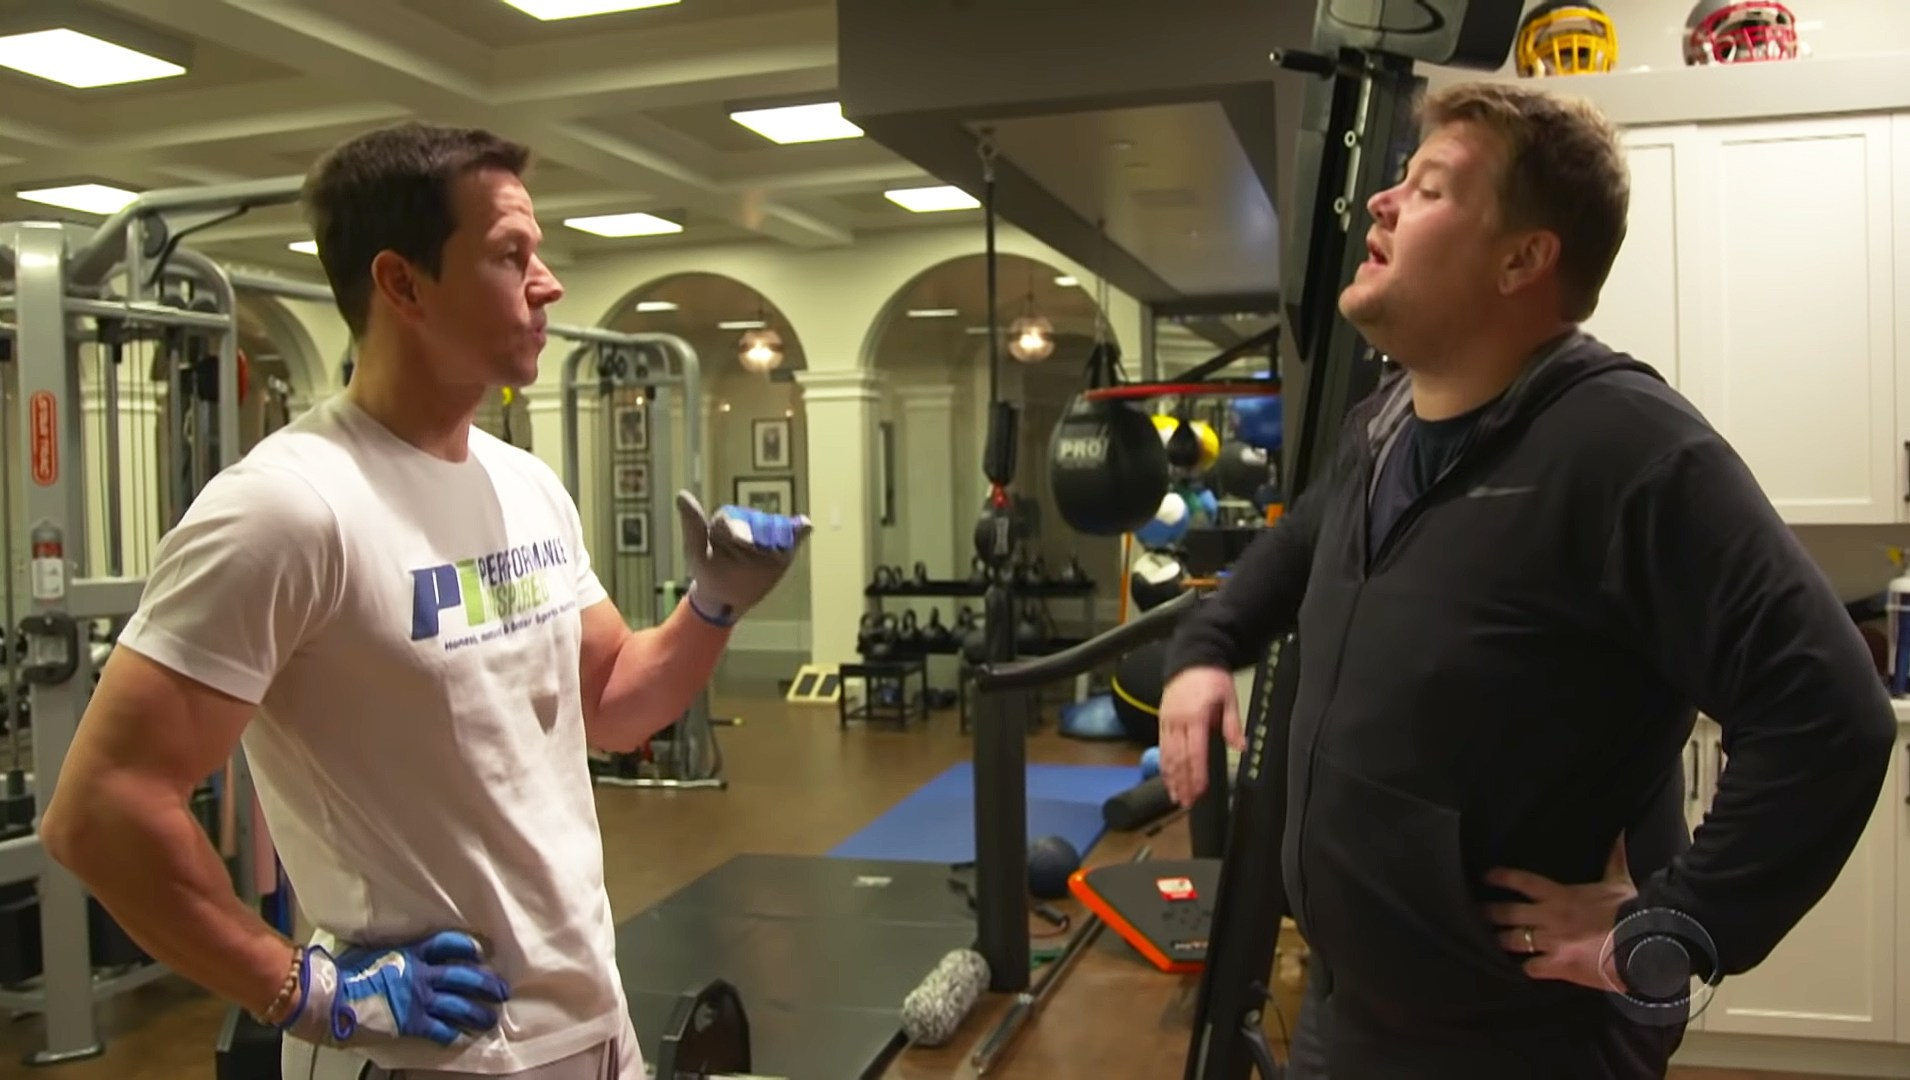 Mark Wahlberg Warns James Corden Their 4 a.m. Workout Is 'Gonna Suck'